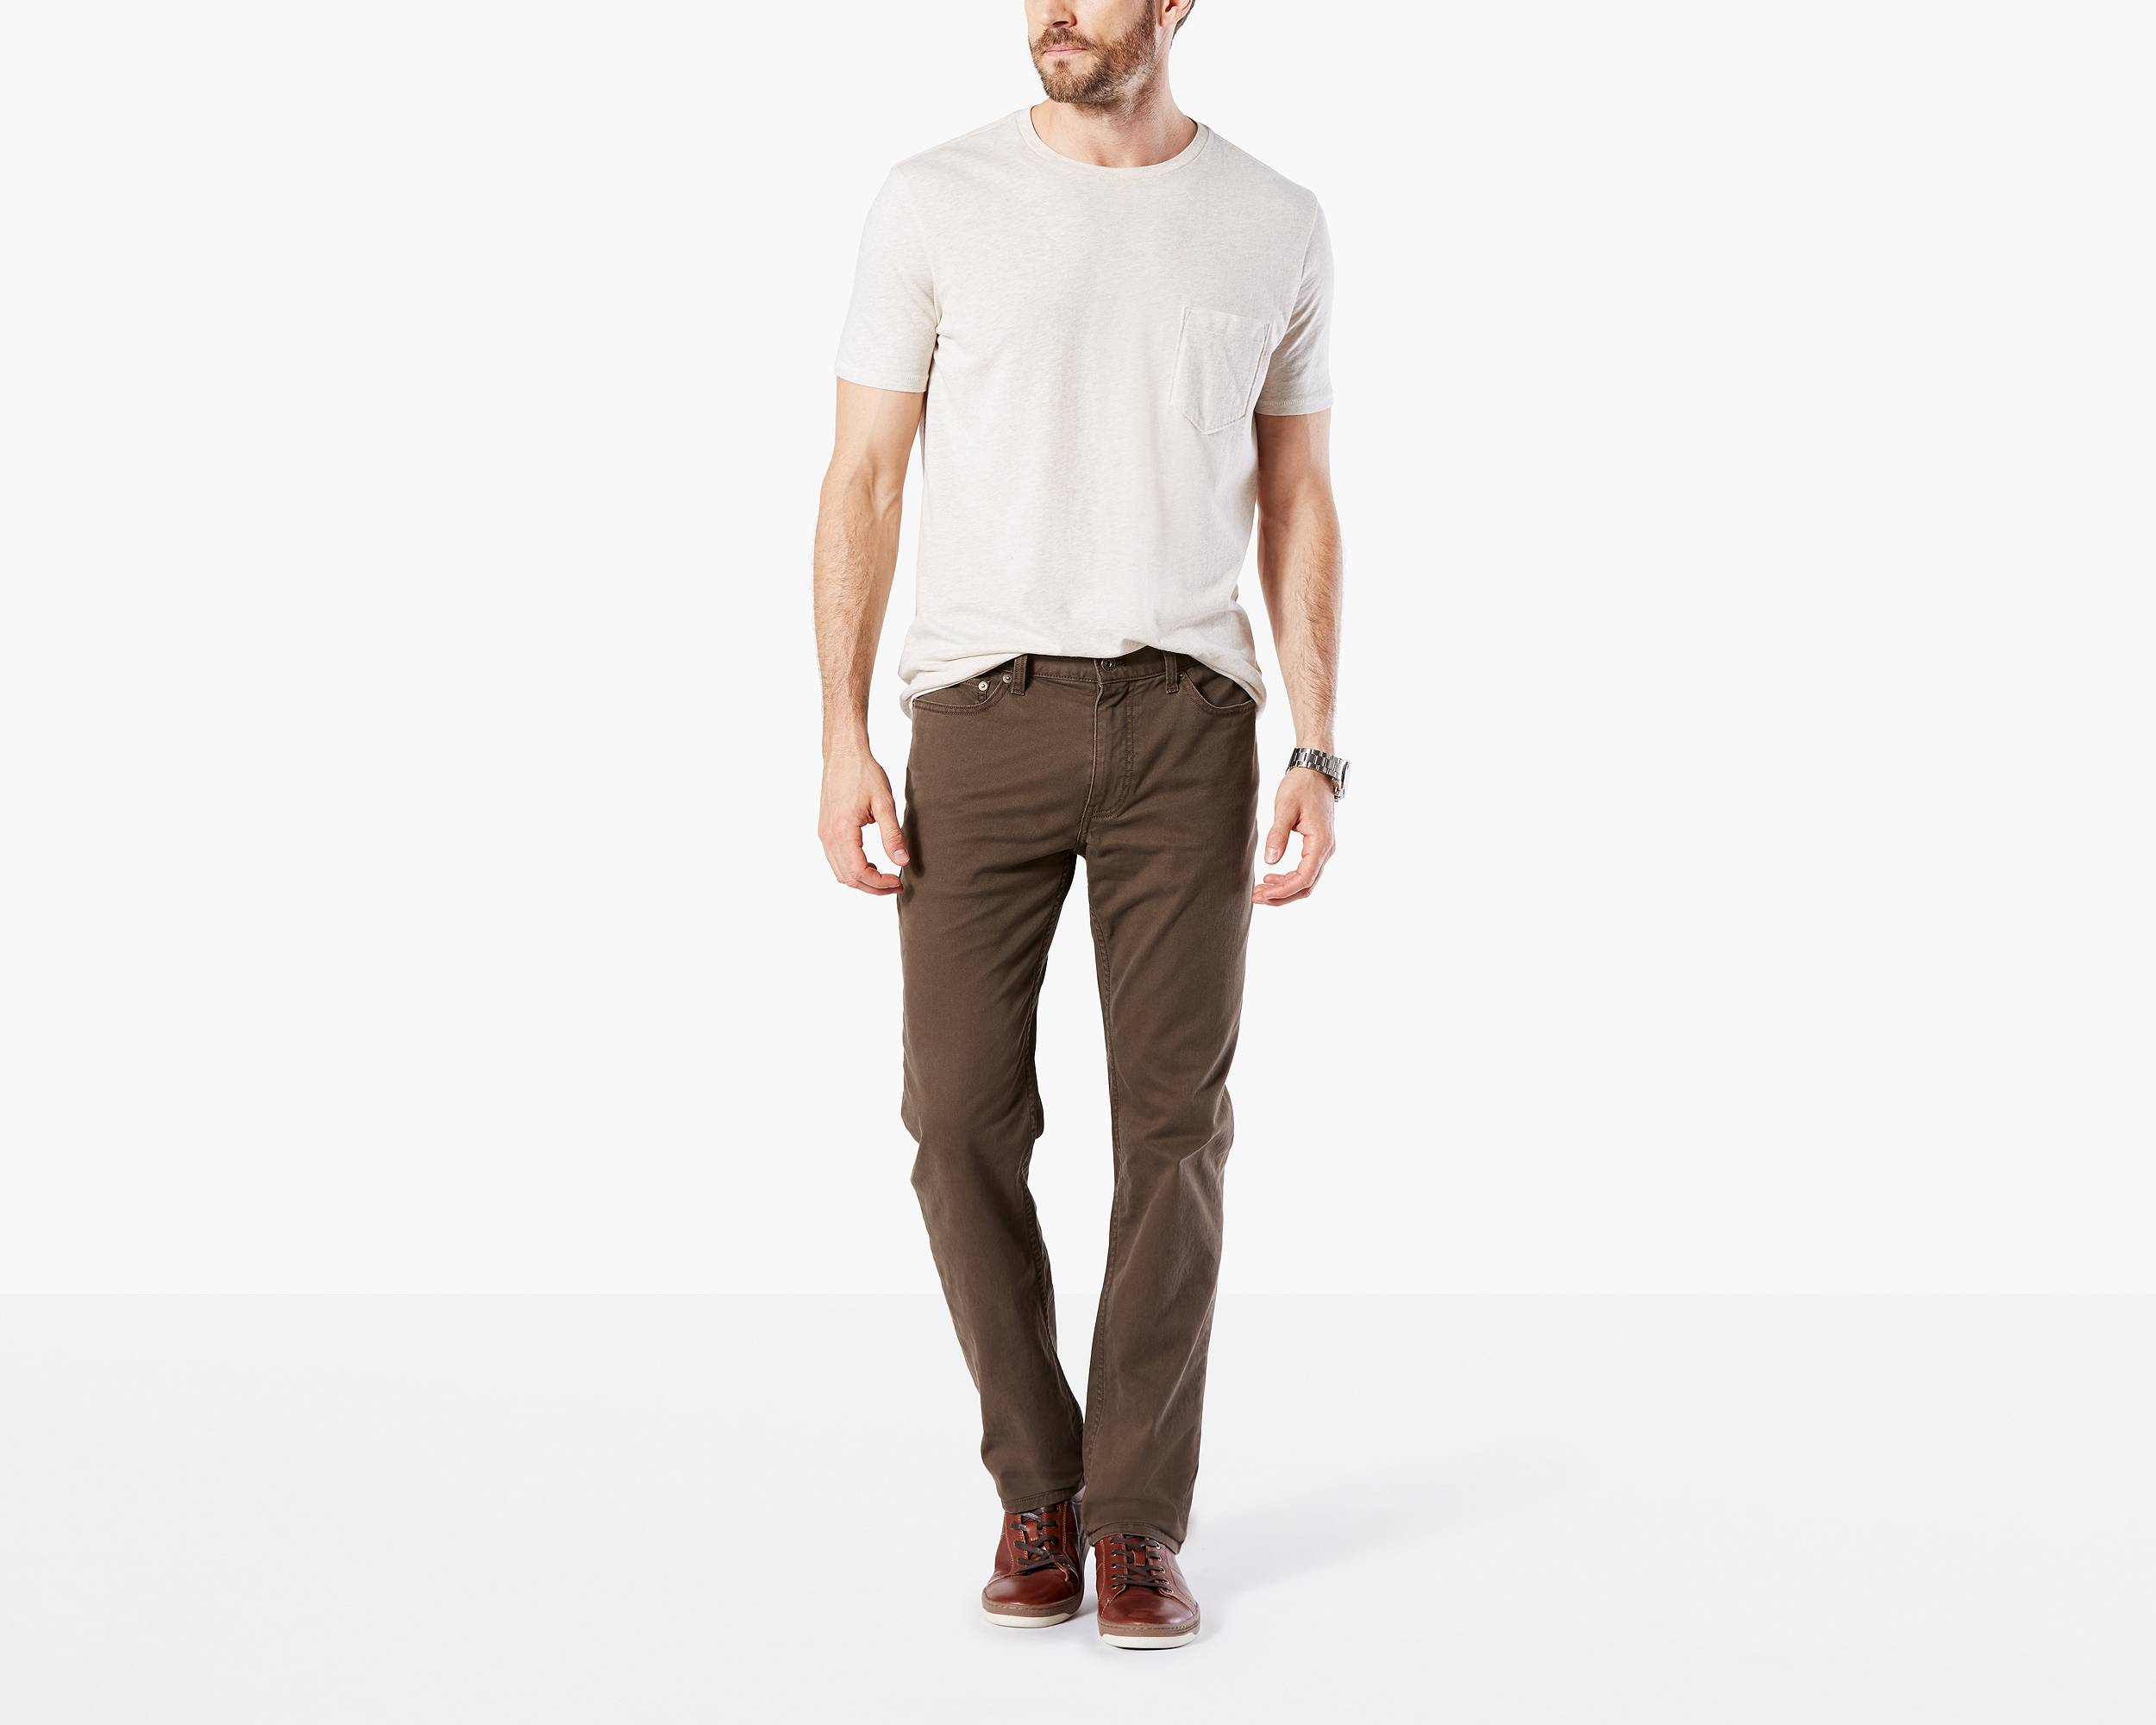 Jean Cut, Slim Tapered Fit by Dockers